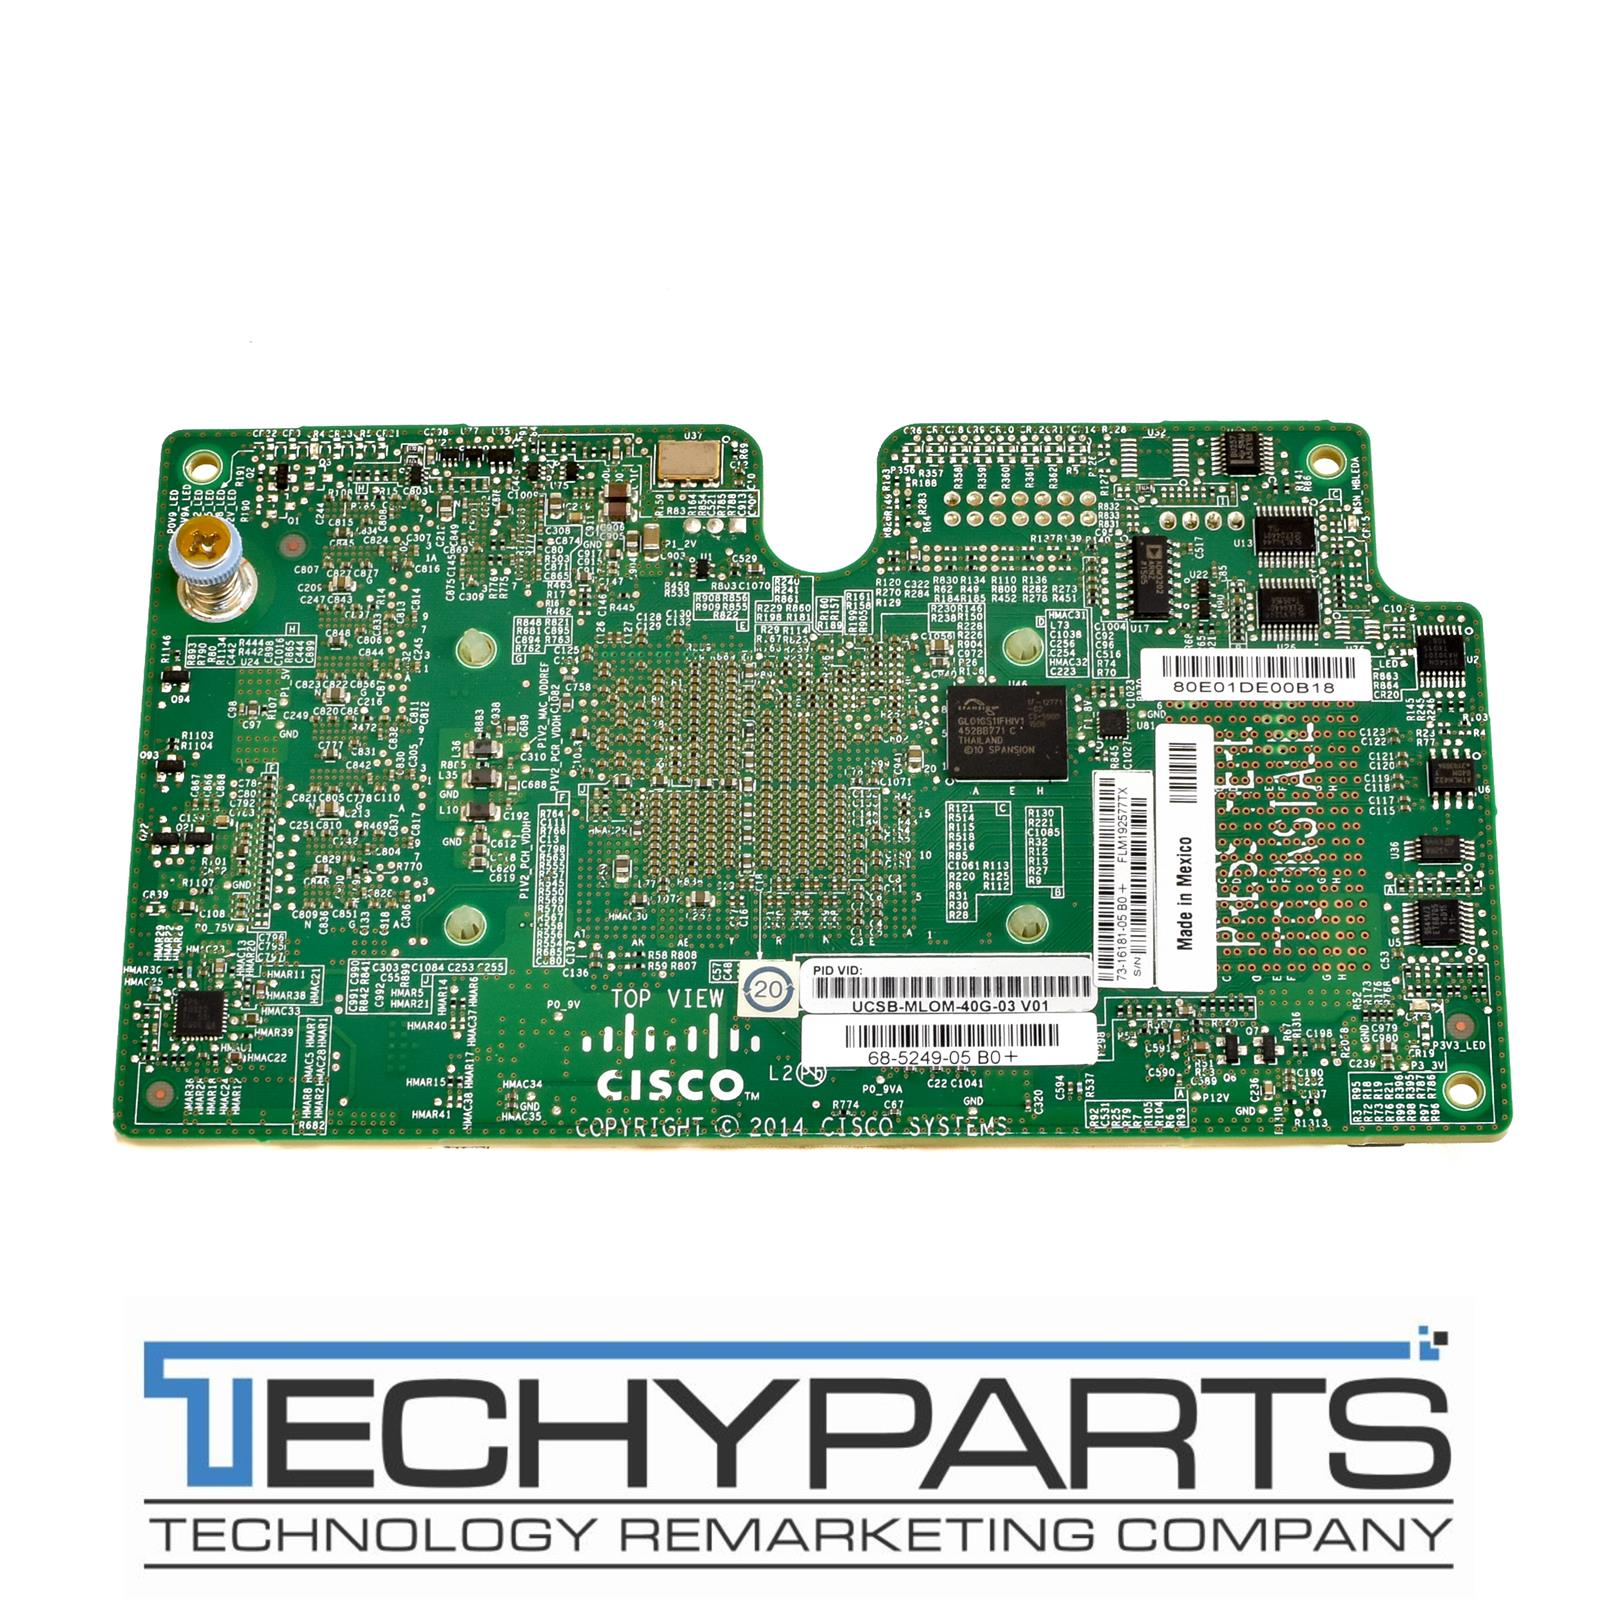 Details about CISCO UCSB-MLOM-40G-03 v01 VIC 1340 Modular LOM 40GbE  68-5249-05 B0+ Adapter